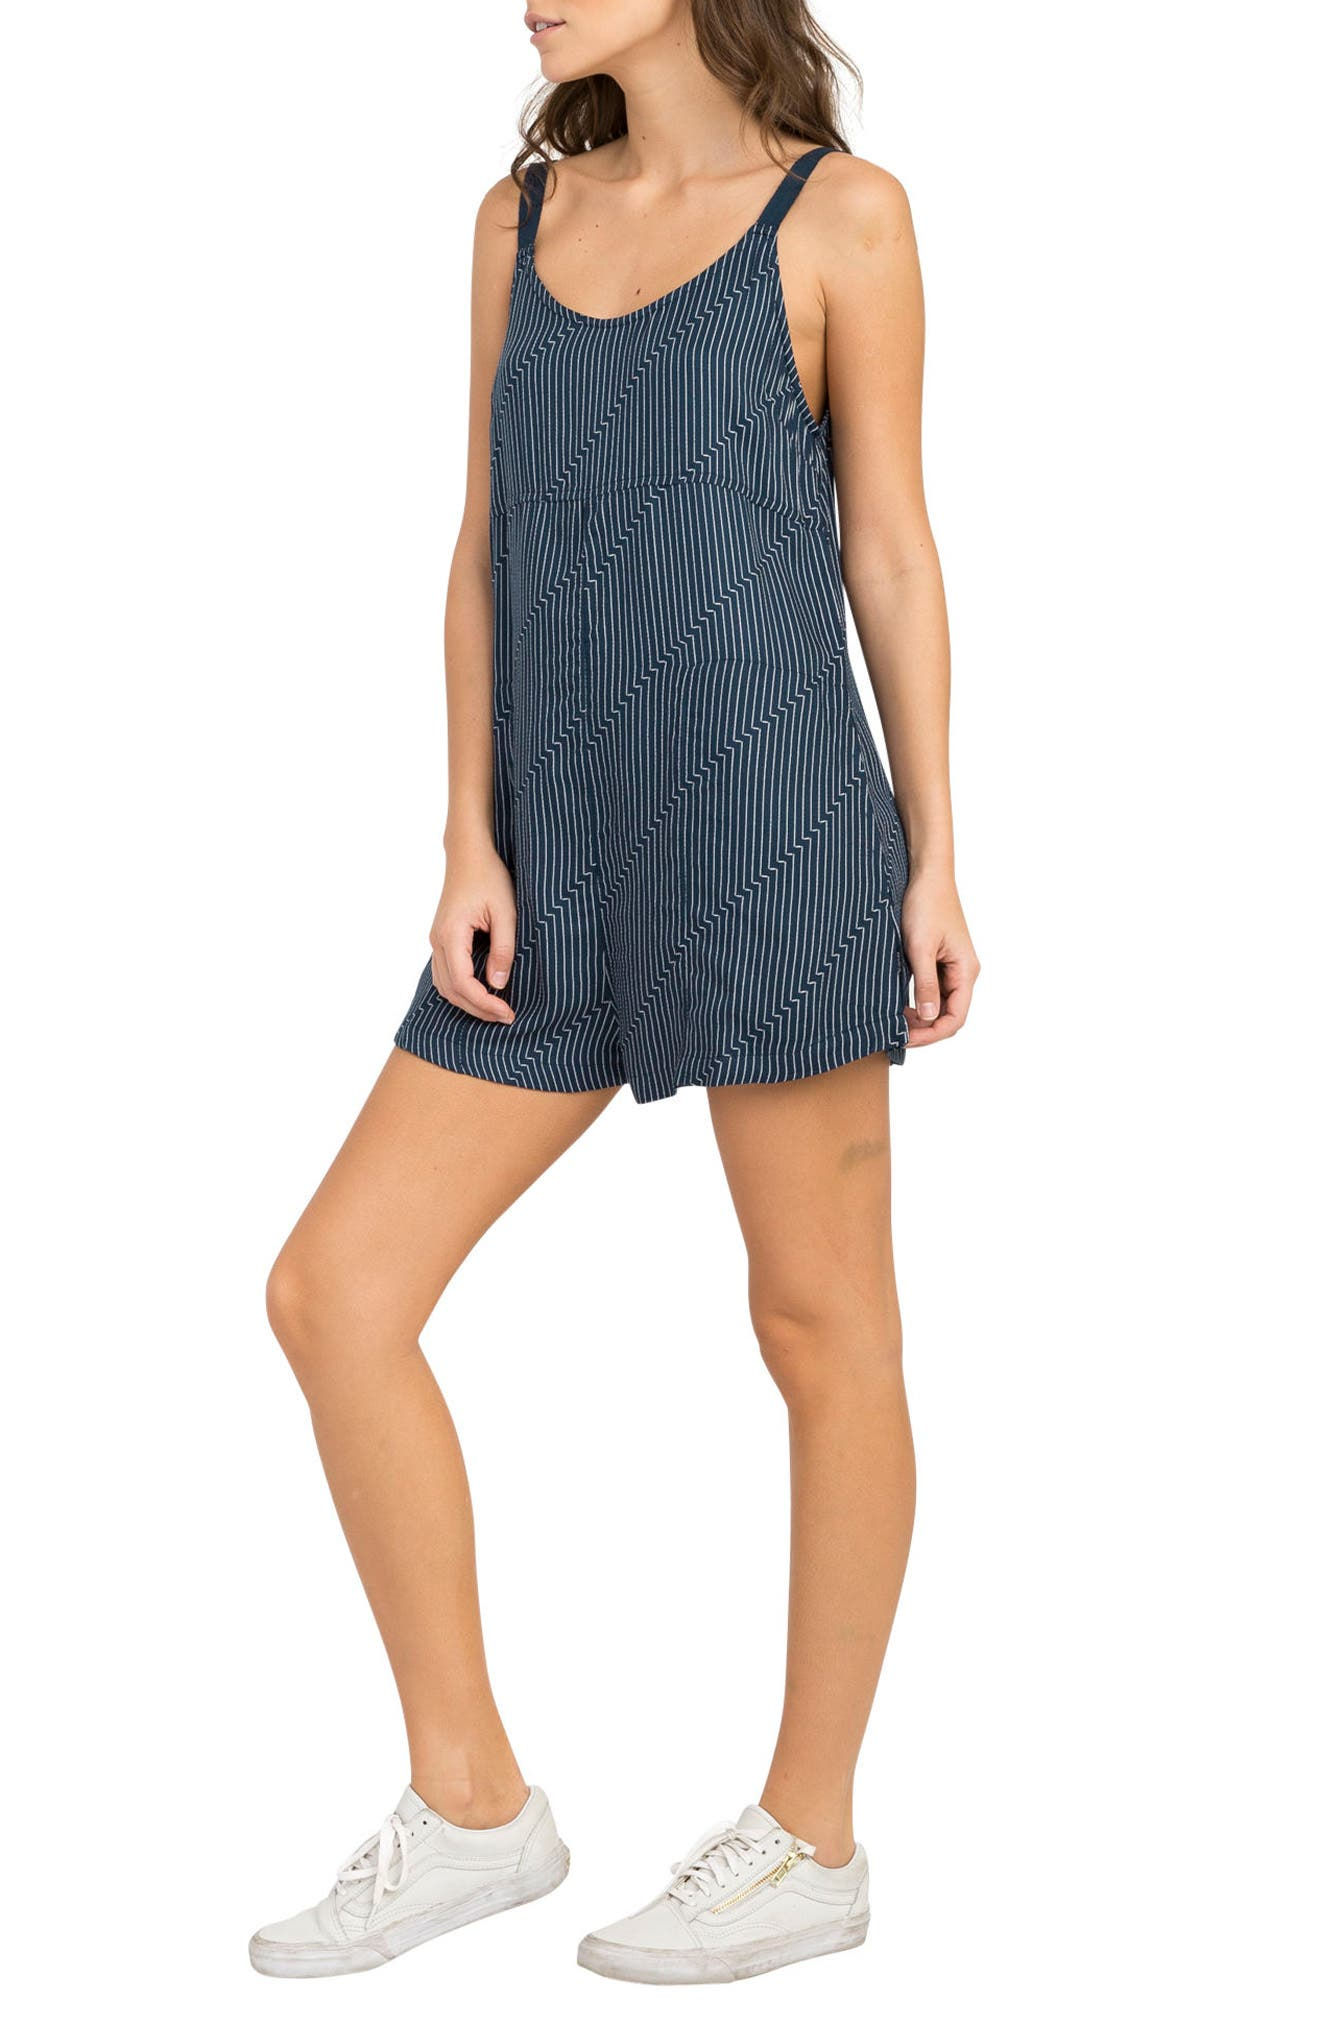 Jury's Out Zigzag Romper,                         Main,                         color, Navy